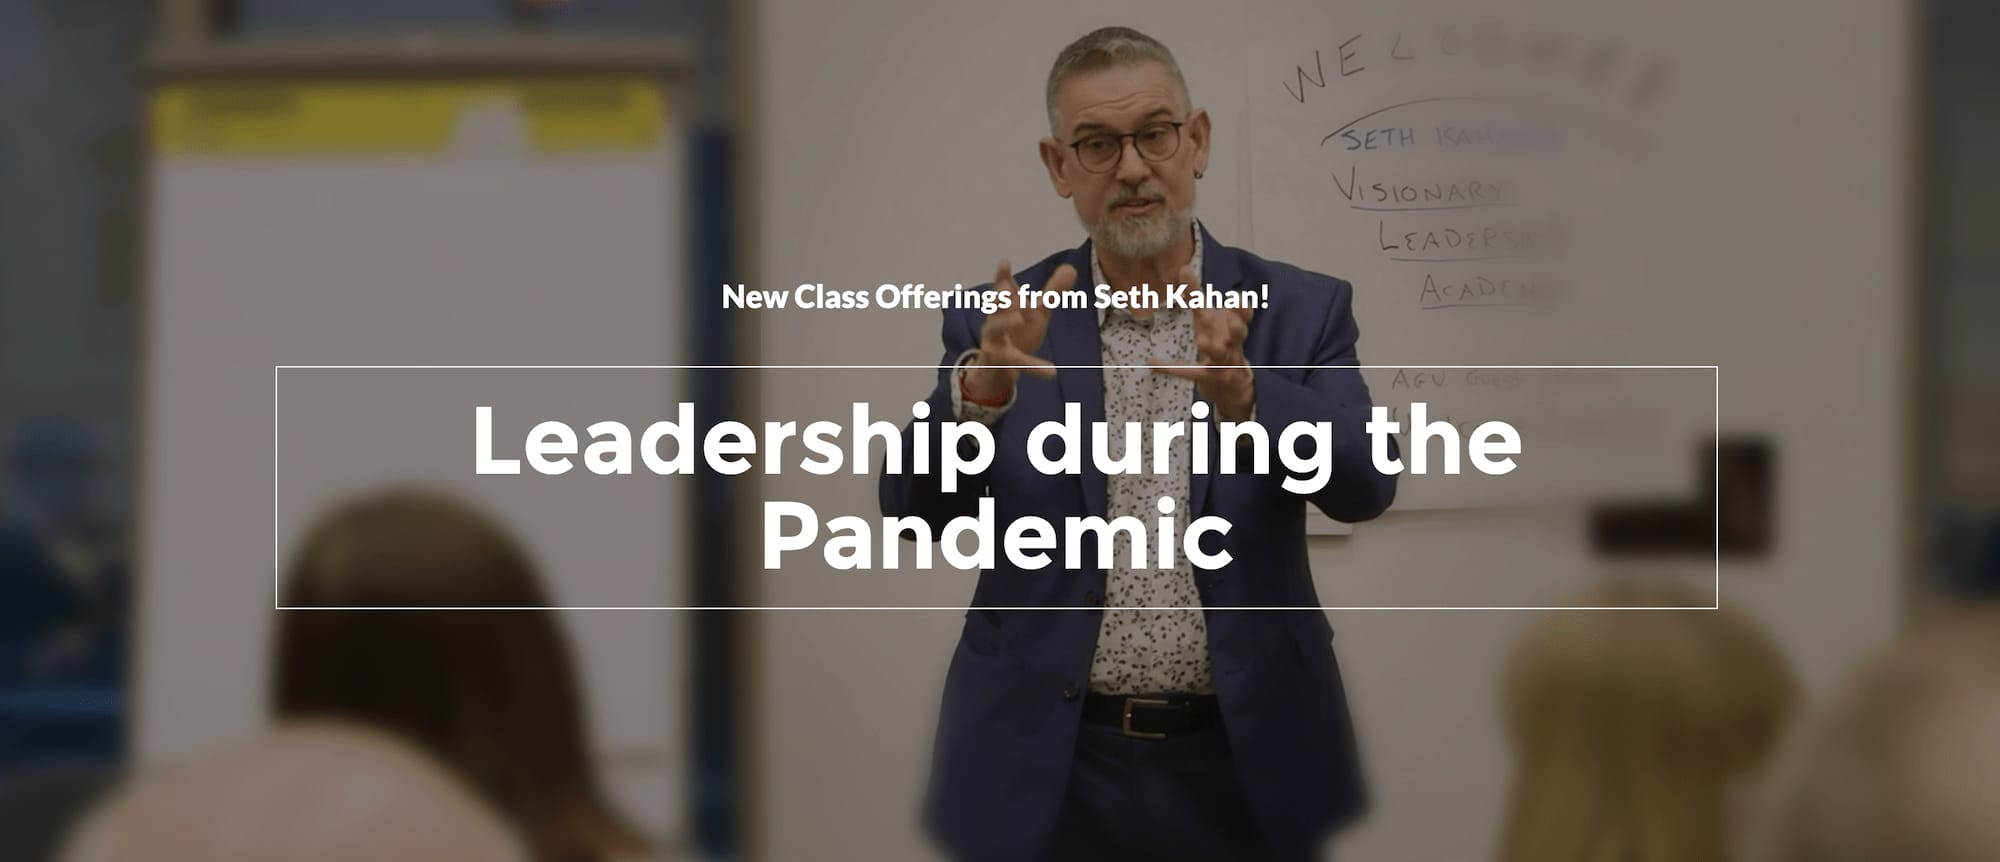 Seth Kahan - leading during the pandemic